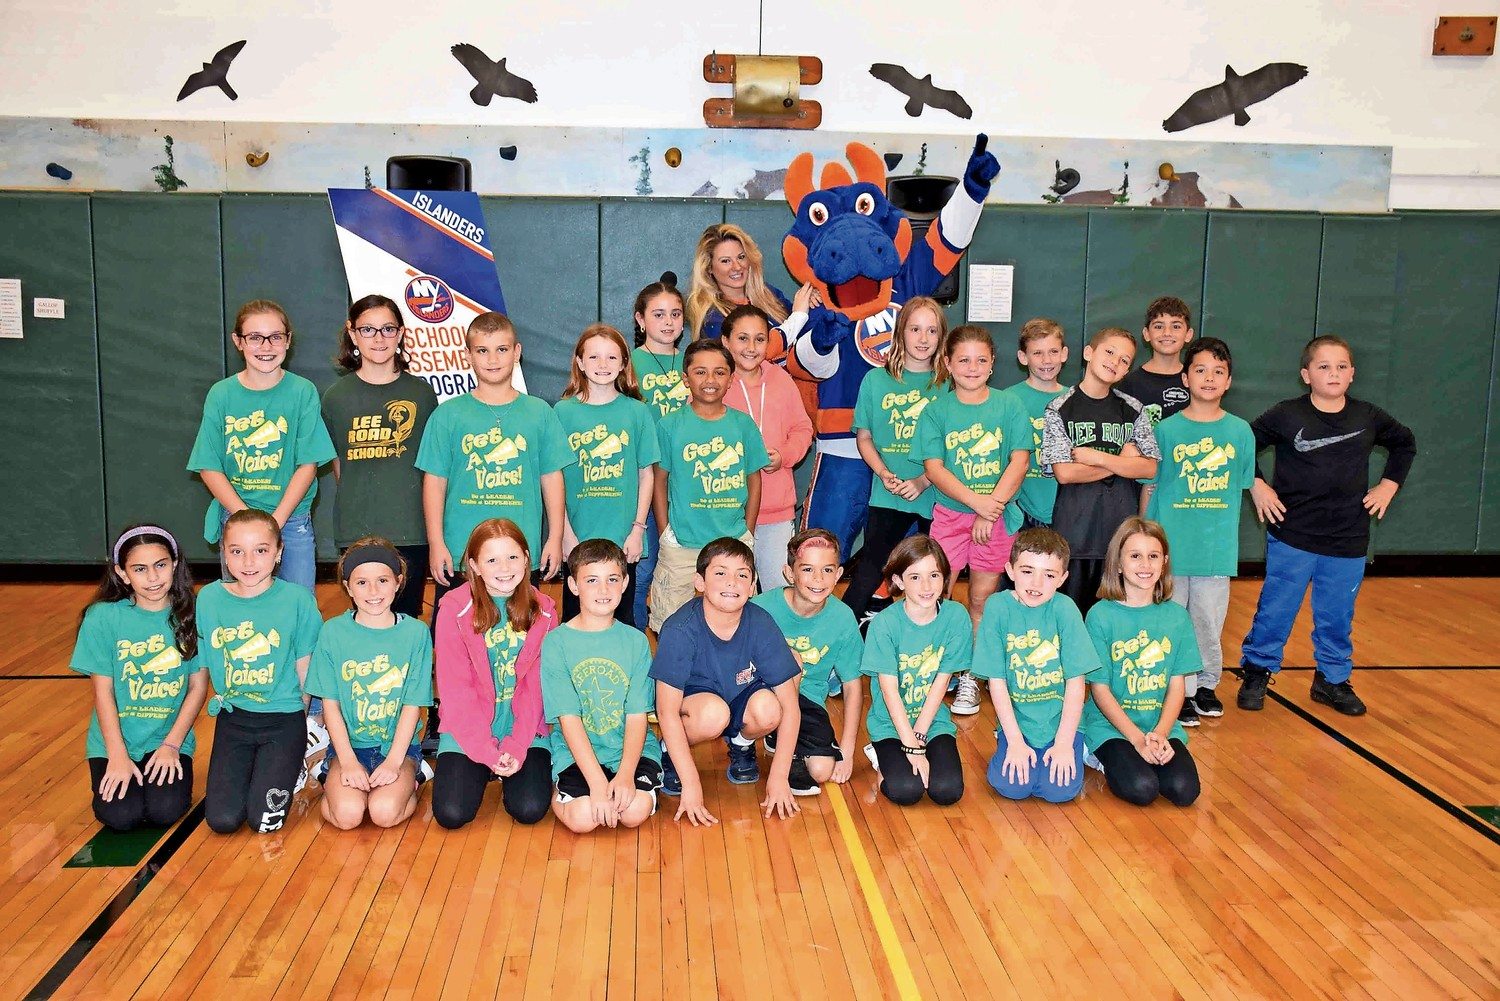 Fourth-grade students at Lee Road Elementary School celebrated the 10th year of its Get-A-Voice Character Education Program on Oct. 24. New York Islanders representative Dina Tsiorvas and mascot Sparky the Dragon attended the kickoff.